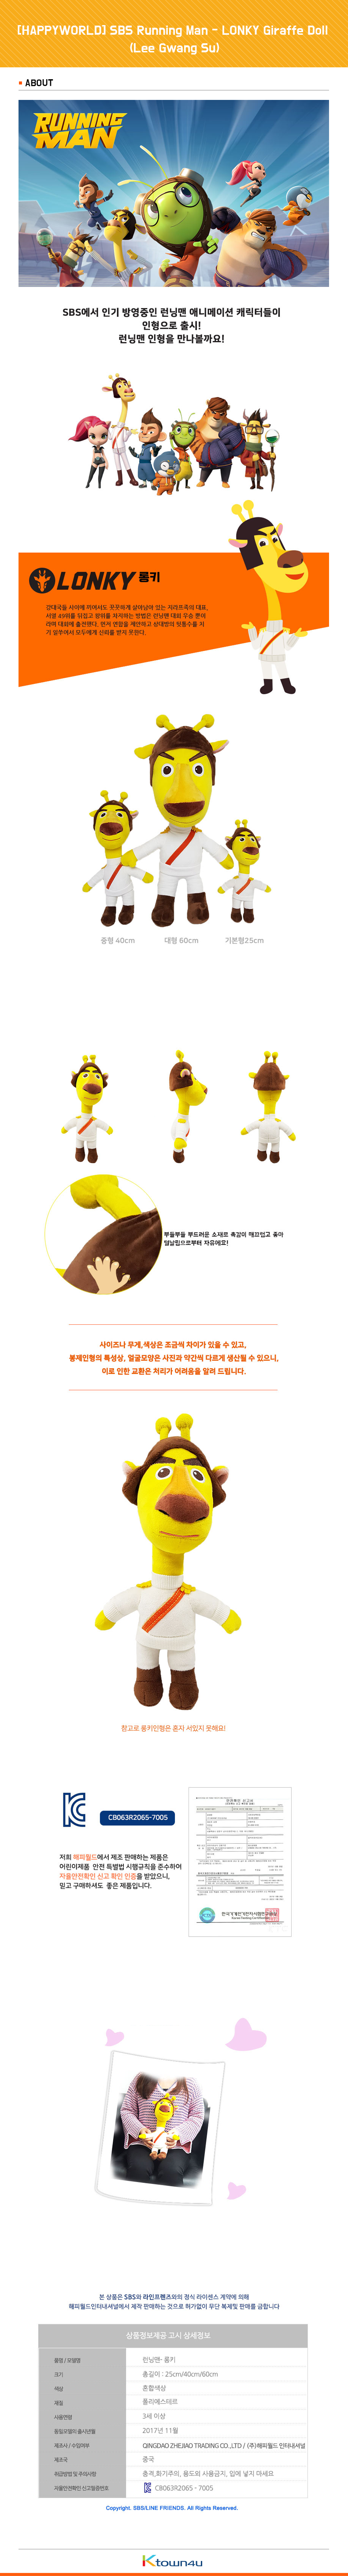 [HAPPYWORLD] SBS Running Man - LONKY Giraffe Doll (Lee Gwang Su)